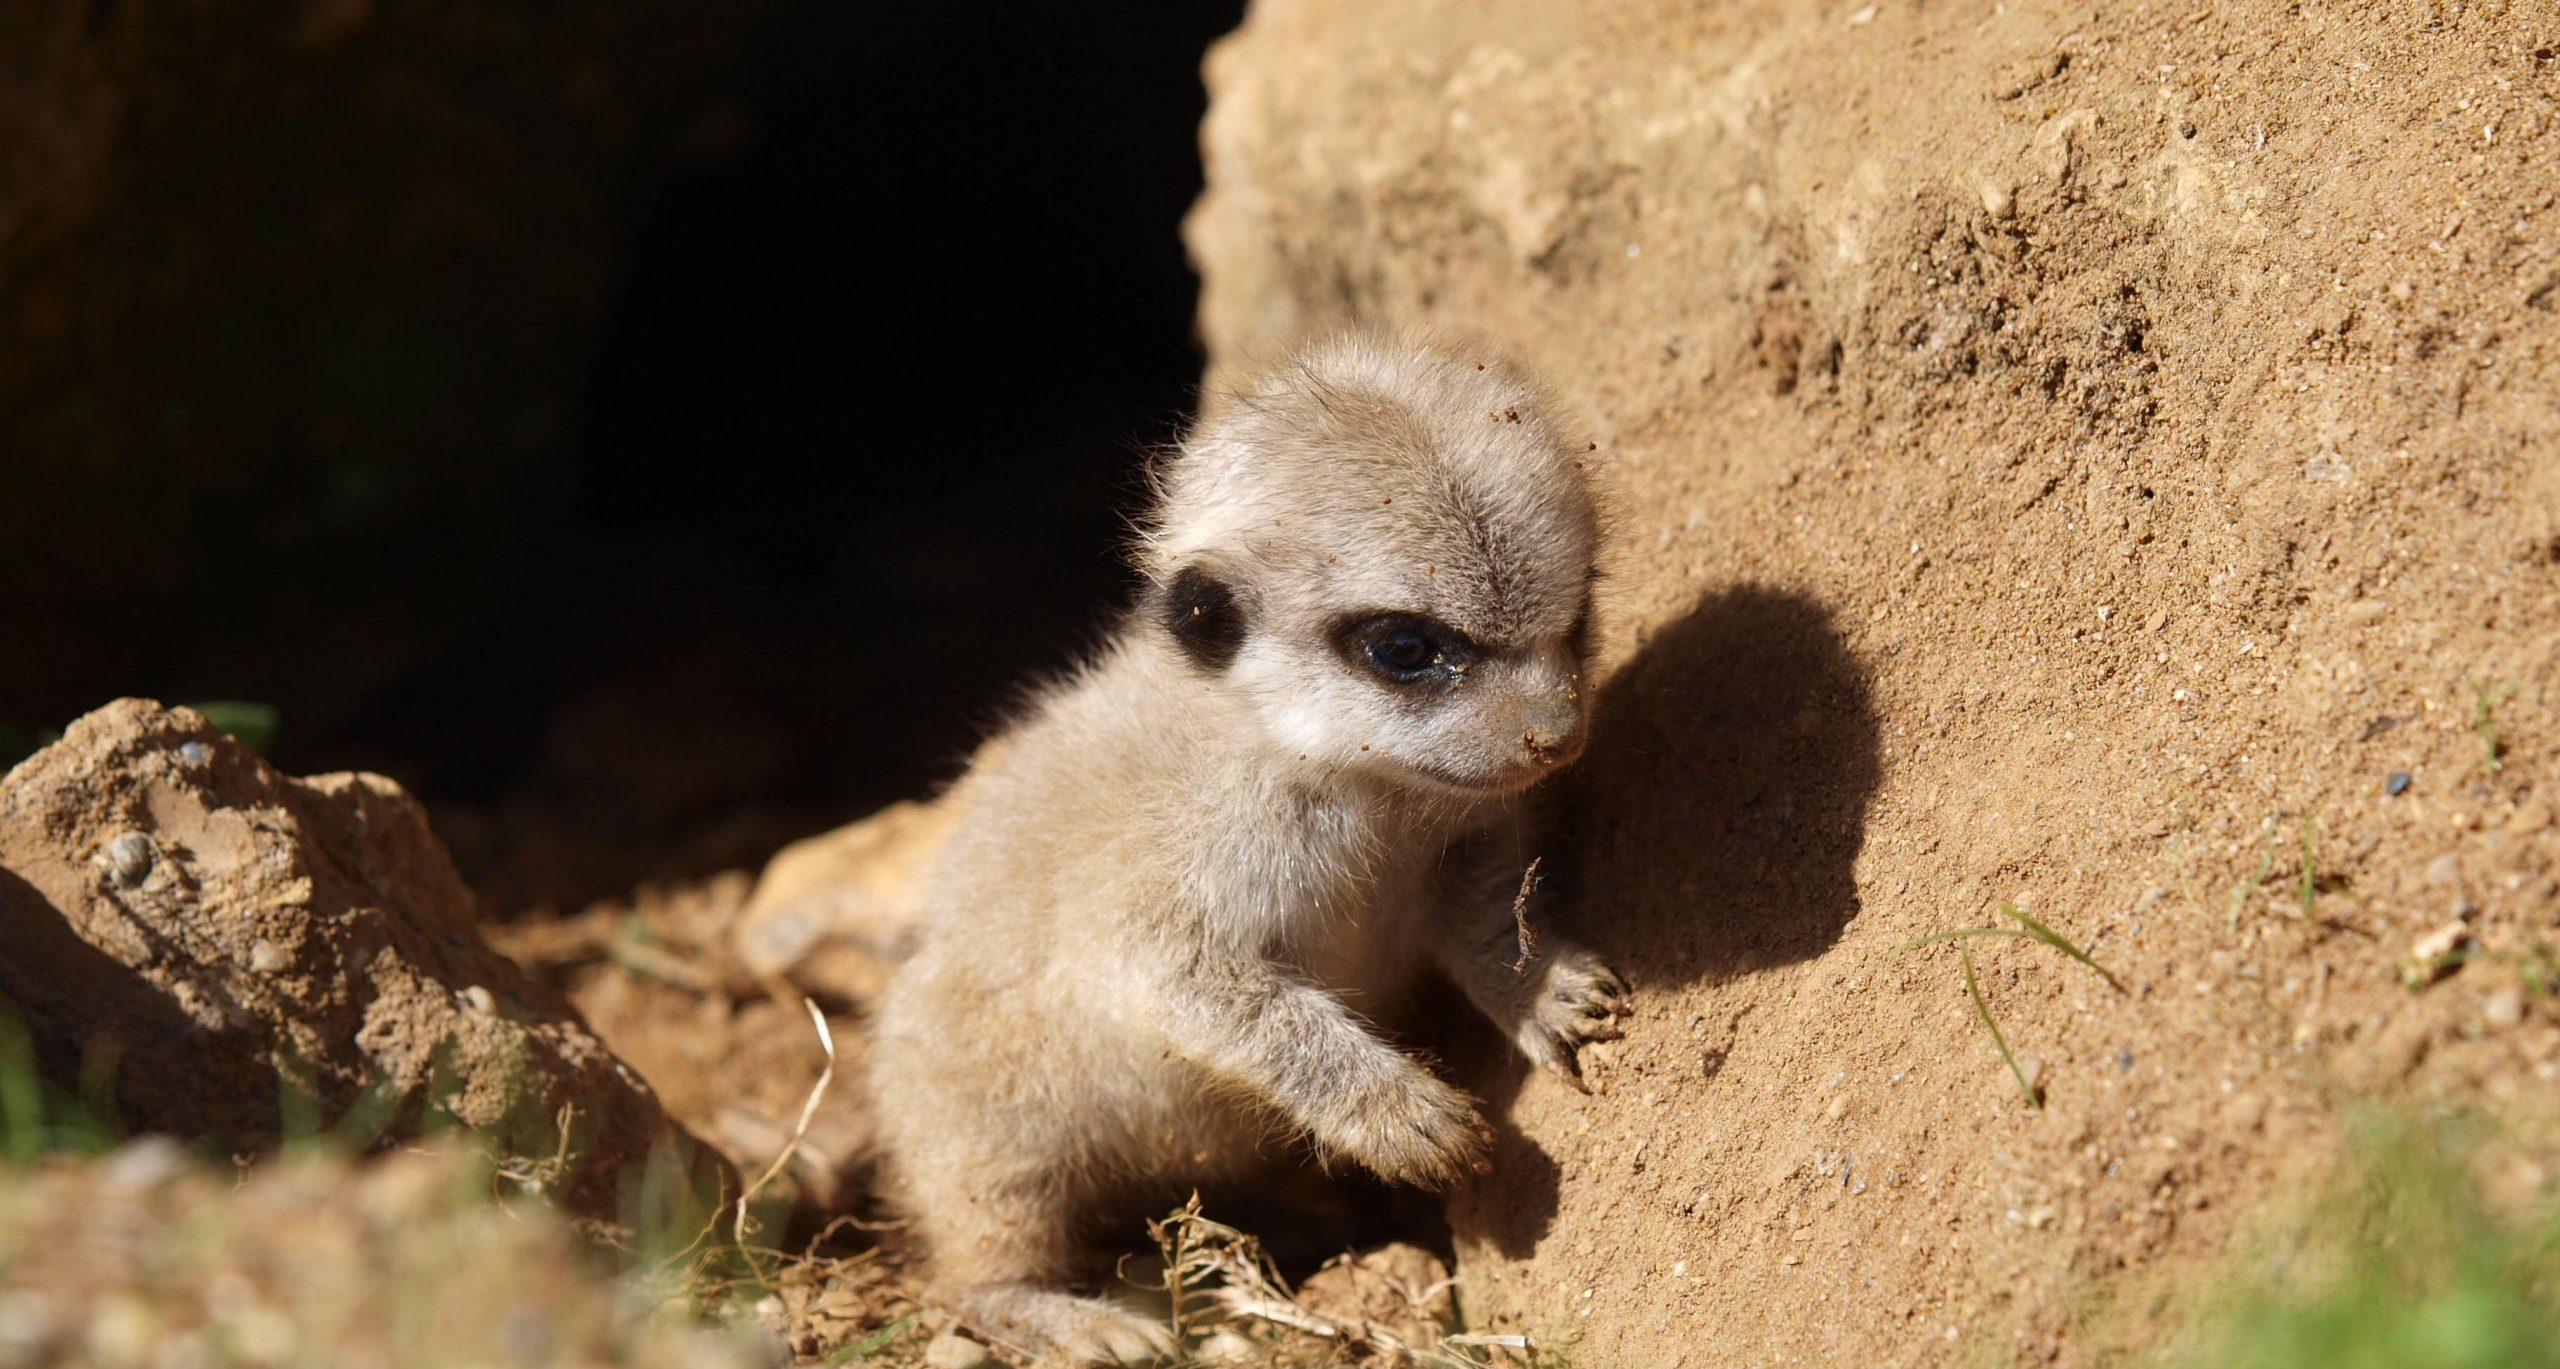 Meerkat Wallpapers 4